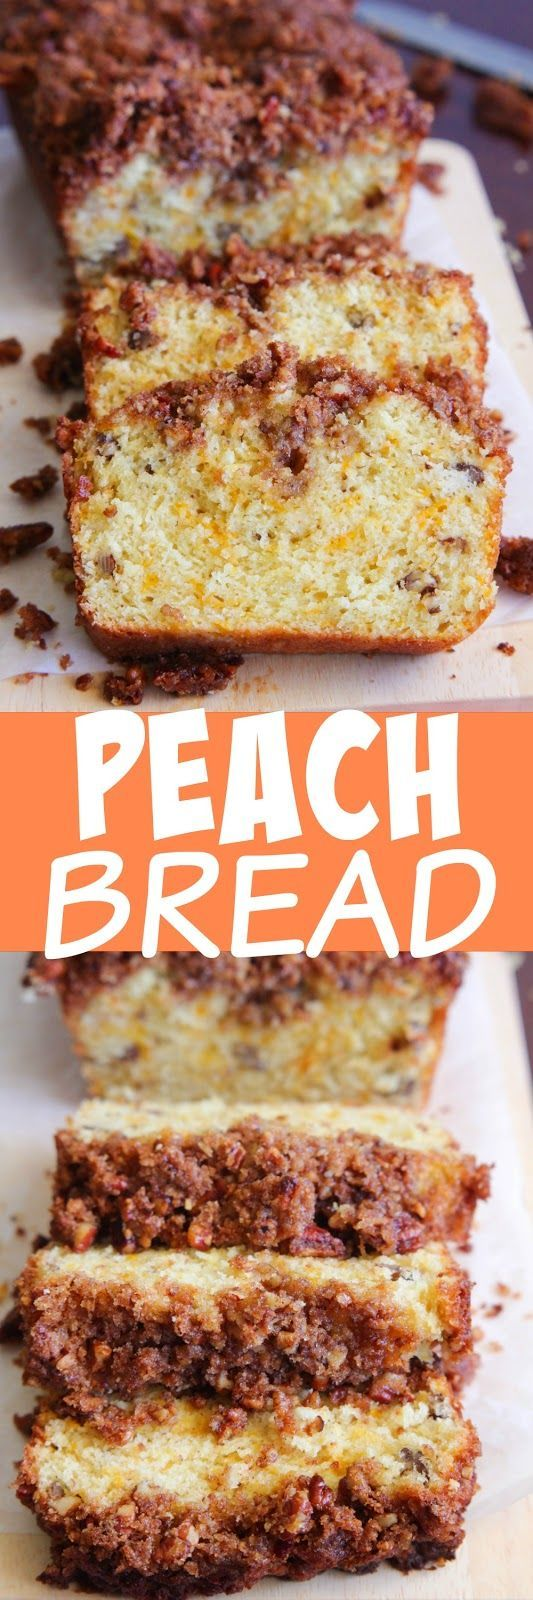 Eat Cake For Dinner: Peach Bread and Country Cooking From a Redneck Kitchen Cookbook Review